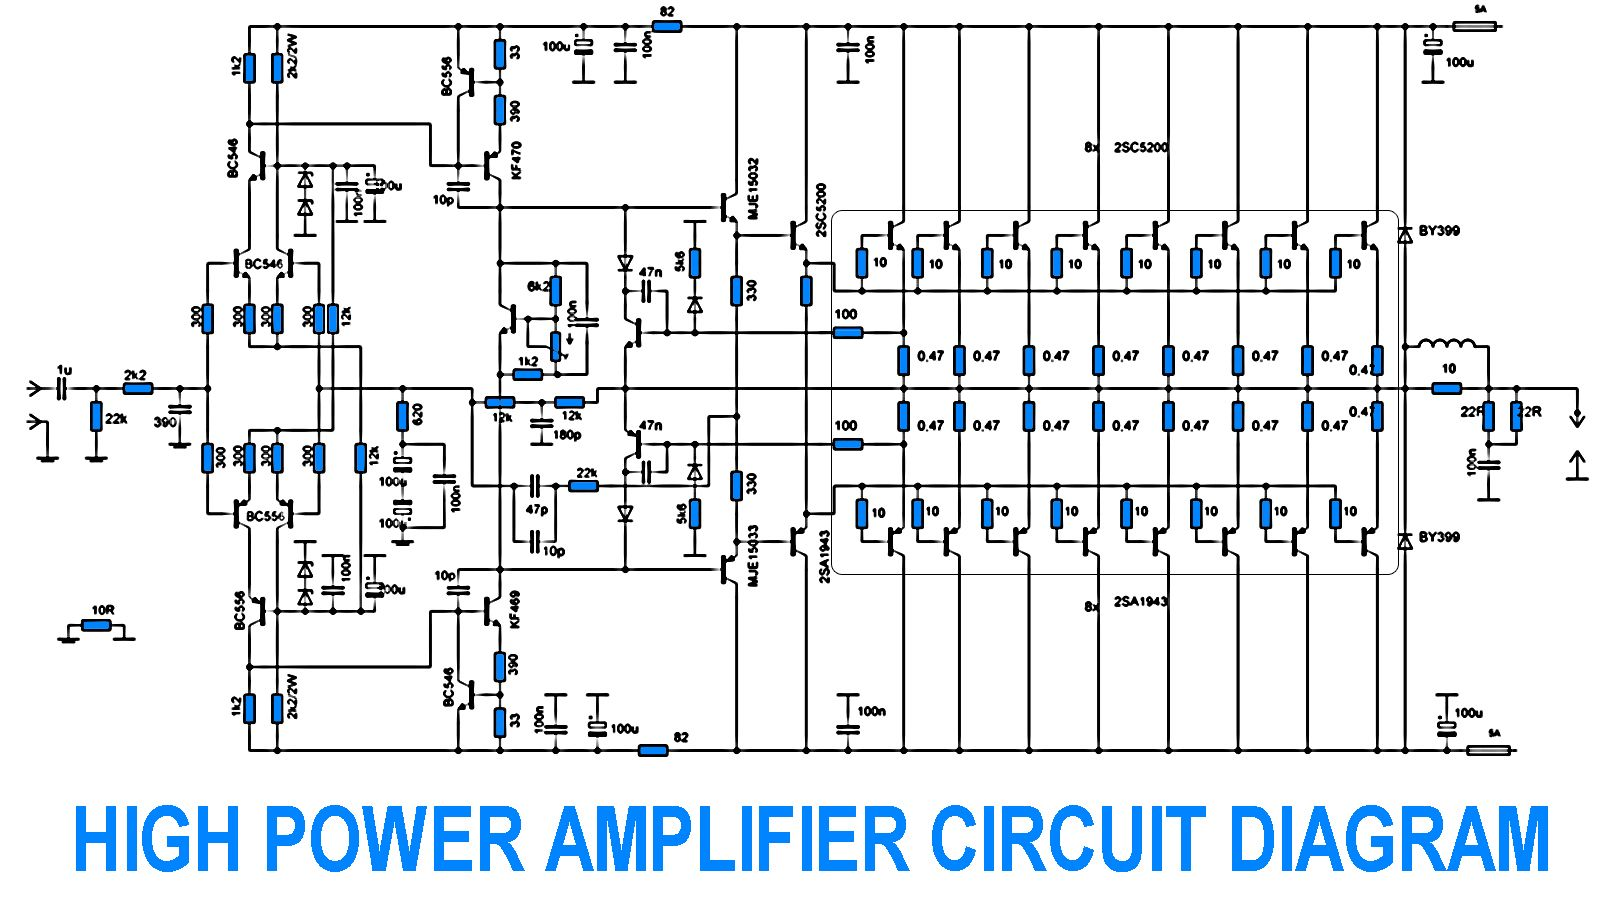 700w power amplifier with 2sc5200, 2sa1943 other project\u0027s700w power amplifier with 2sc5200, 2sa1943